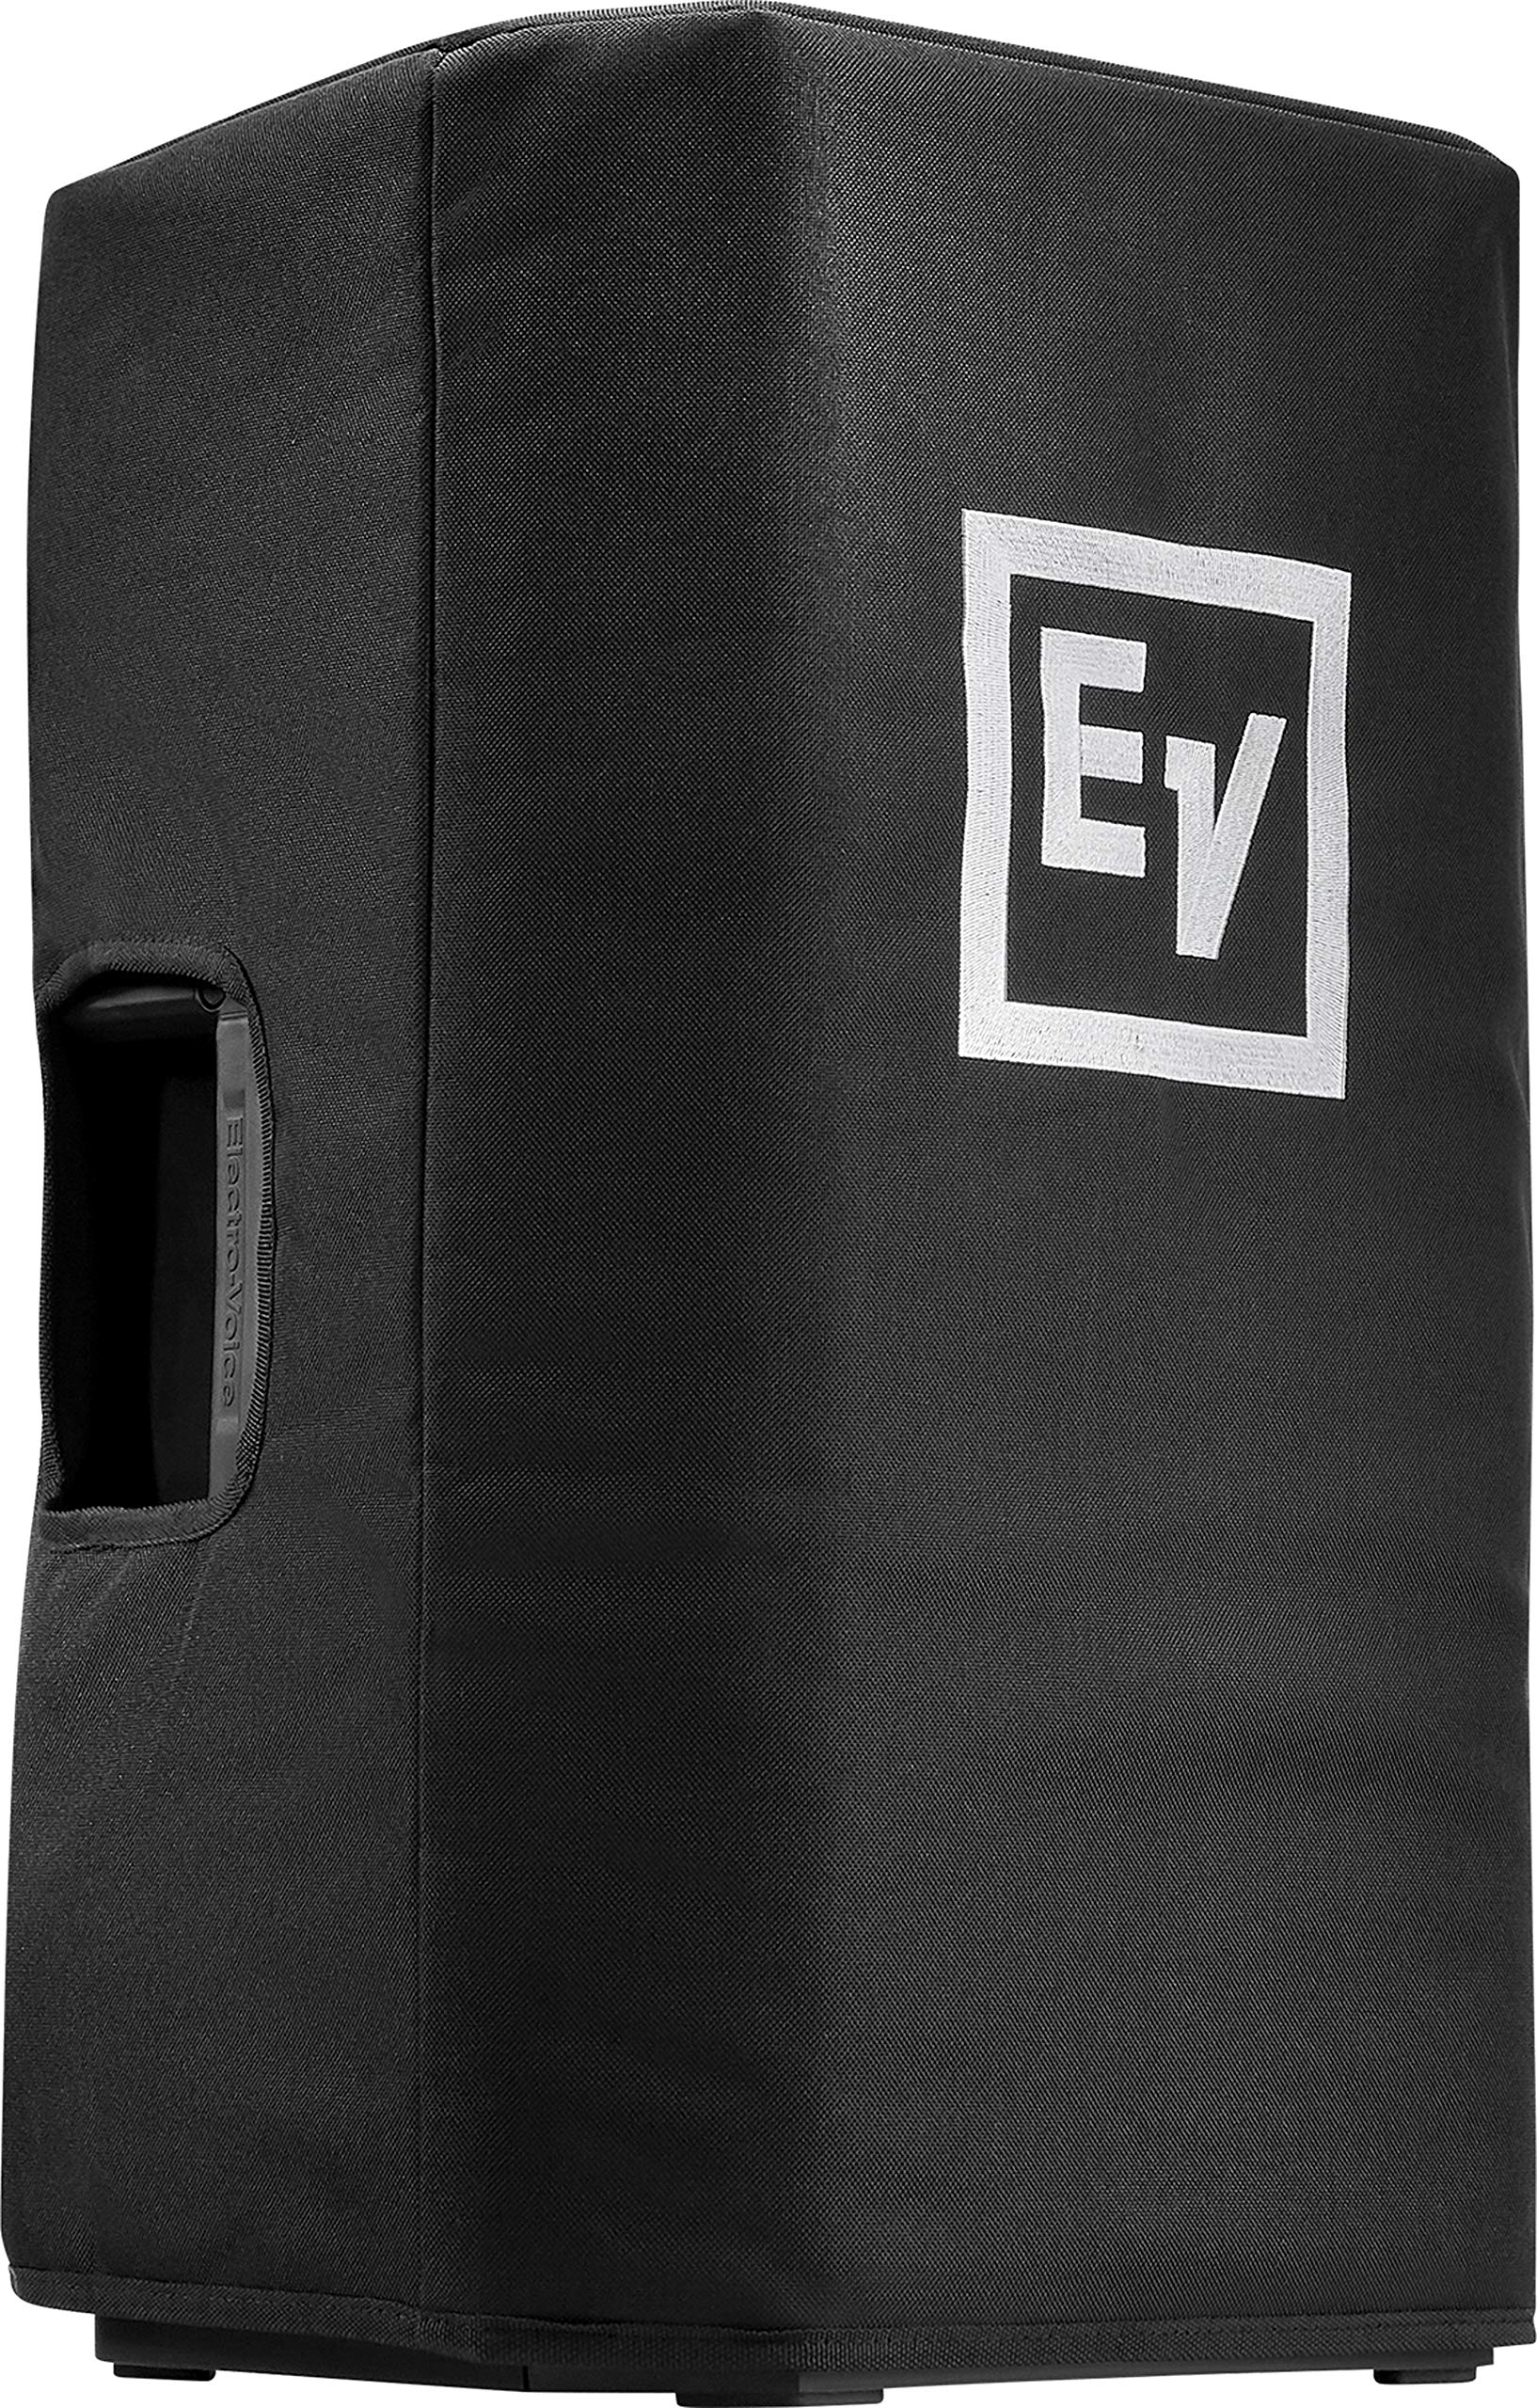 Electro-Voice ELX200-10-CVR Deluxe Padded Cover for ELX200-10 and 10P Speakers by Electro-Voice